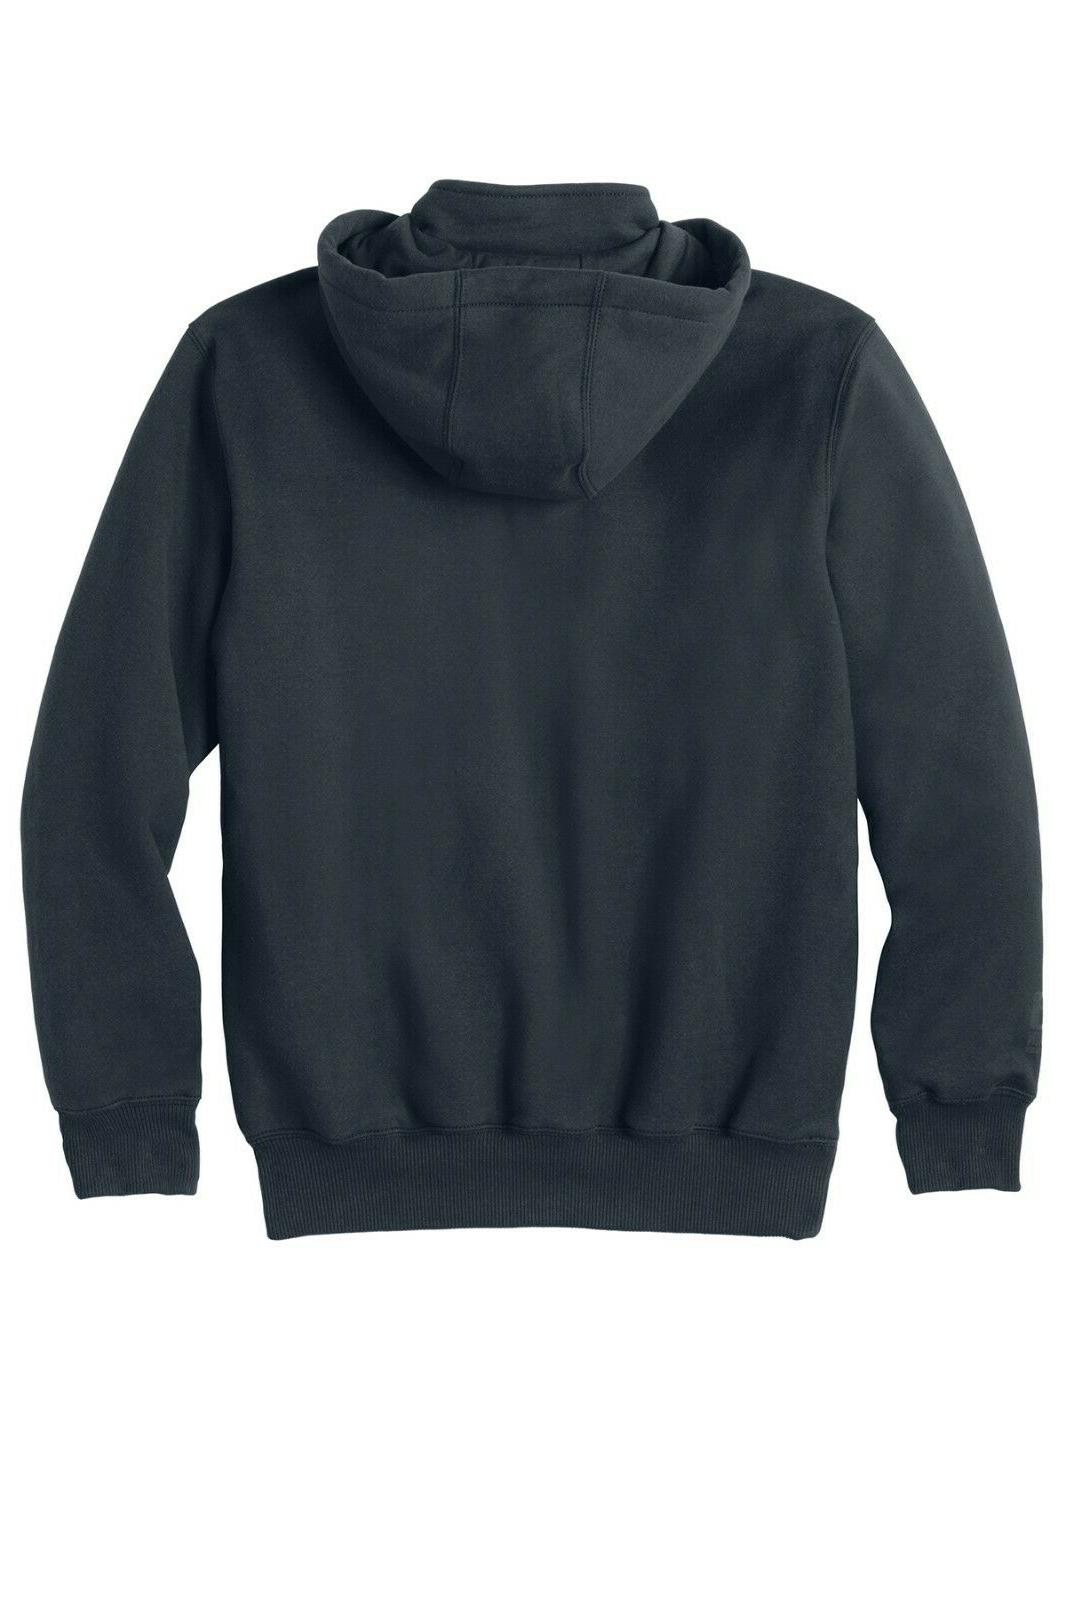 Carhartt Men's Quarter Zip